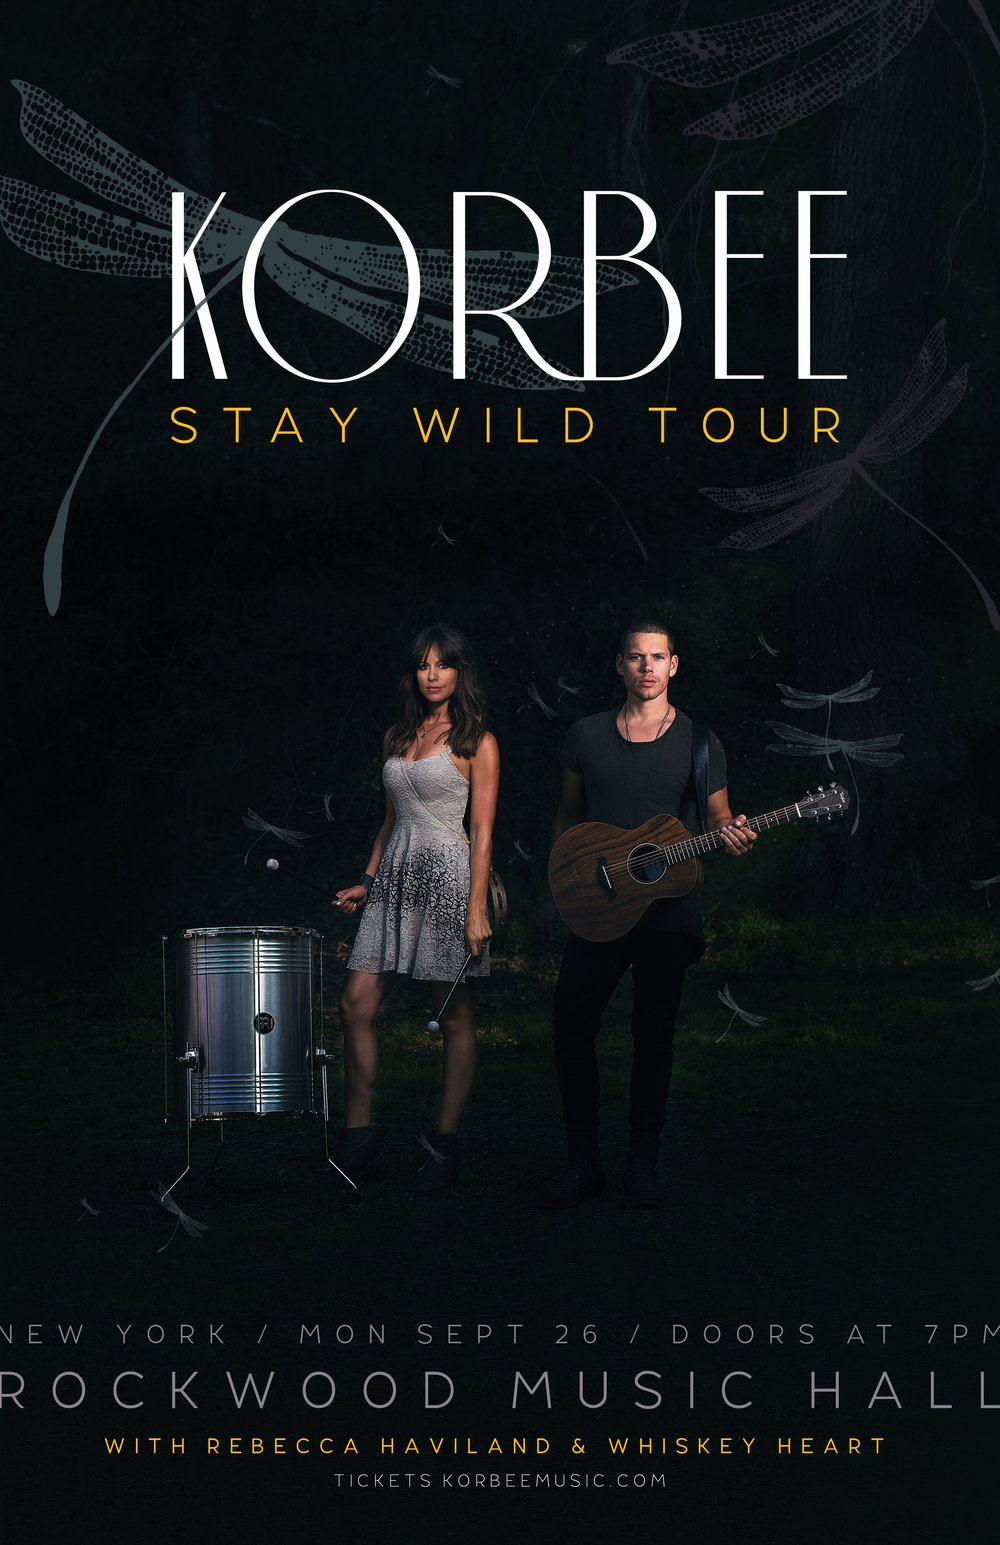 Korbee - Stay Wild Tour - 11 x 17 Poster - New York - Final.jpg